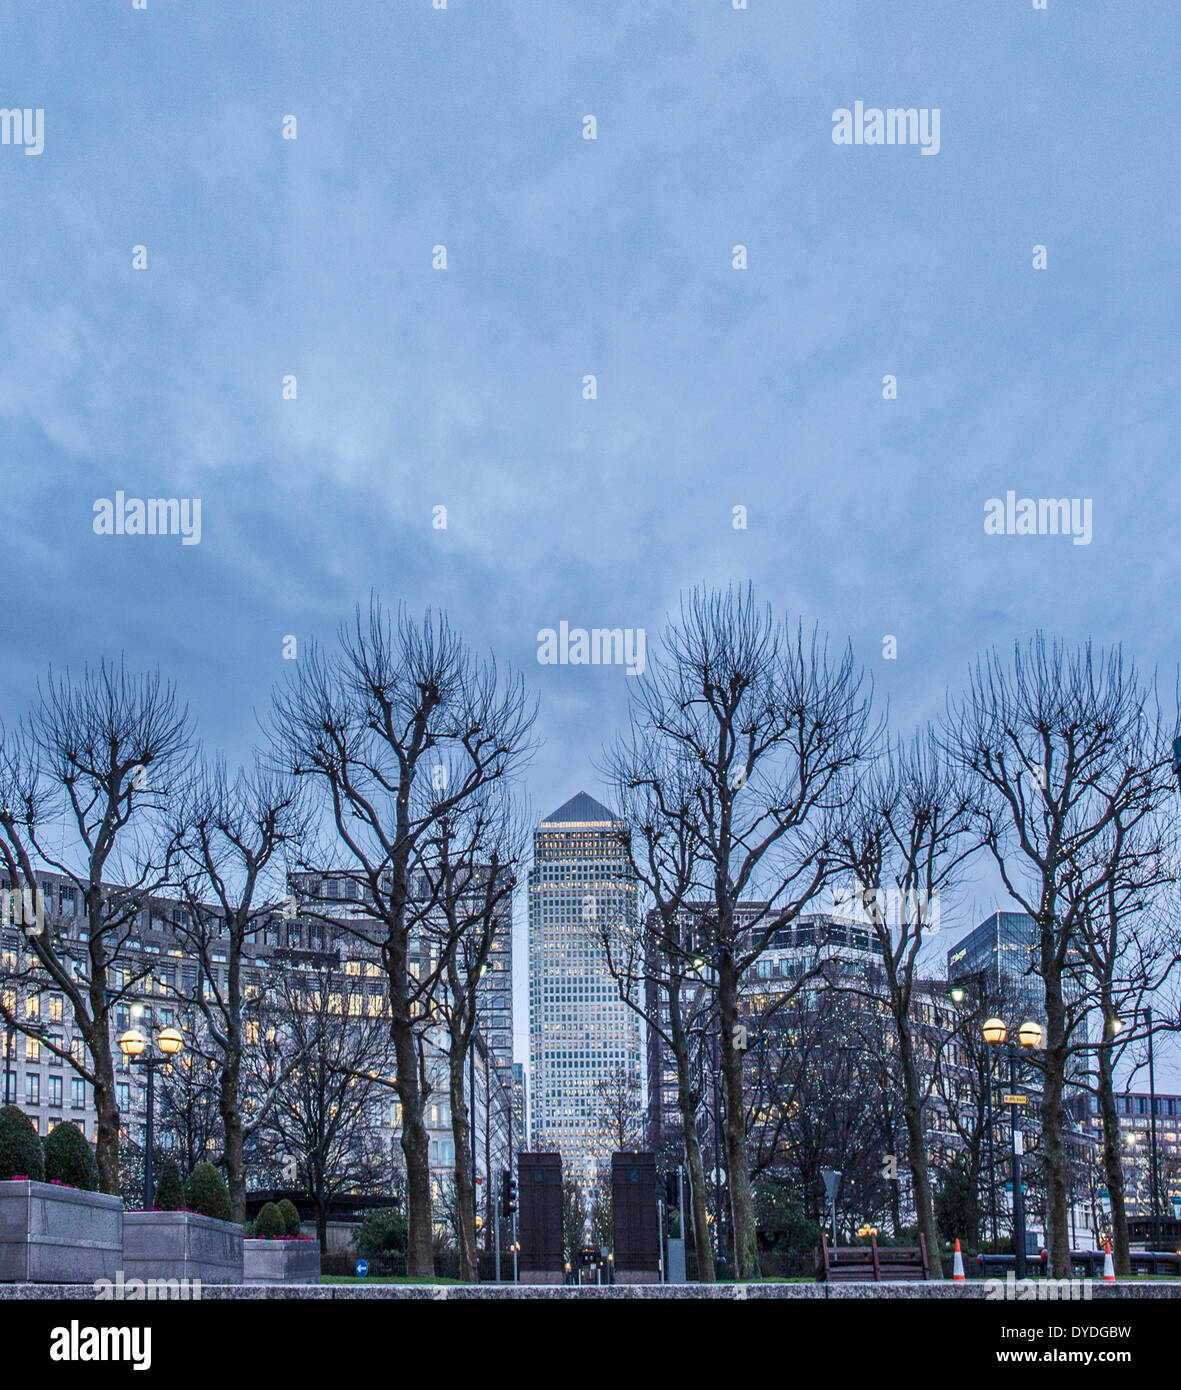 Canary Wharf in winter at dusk. - Stock Image